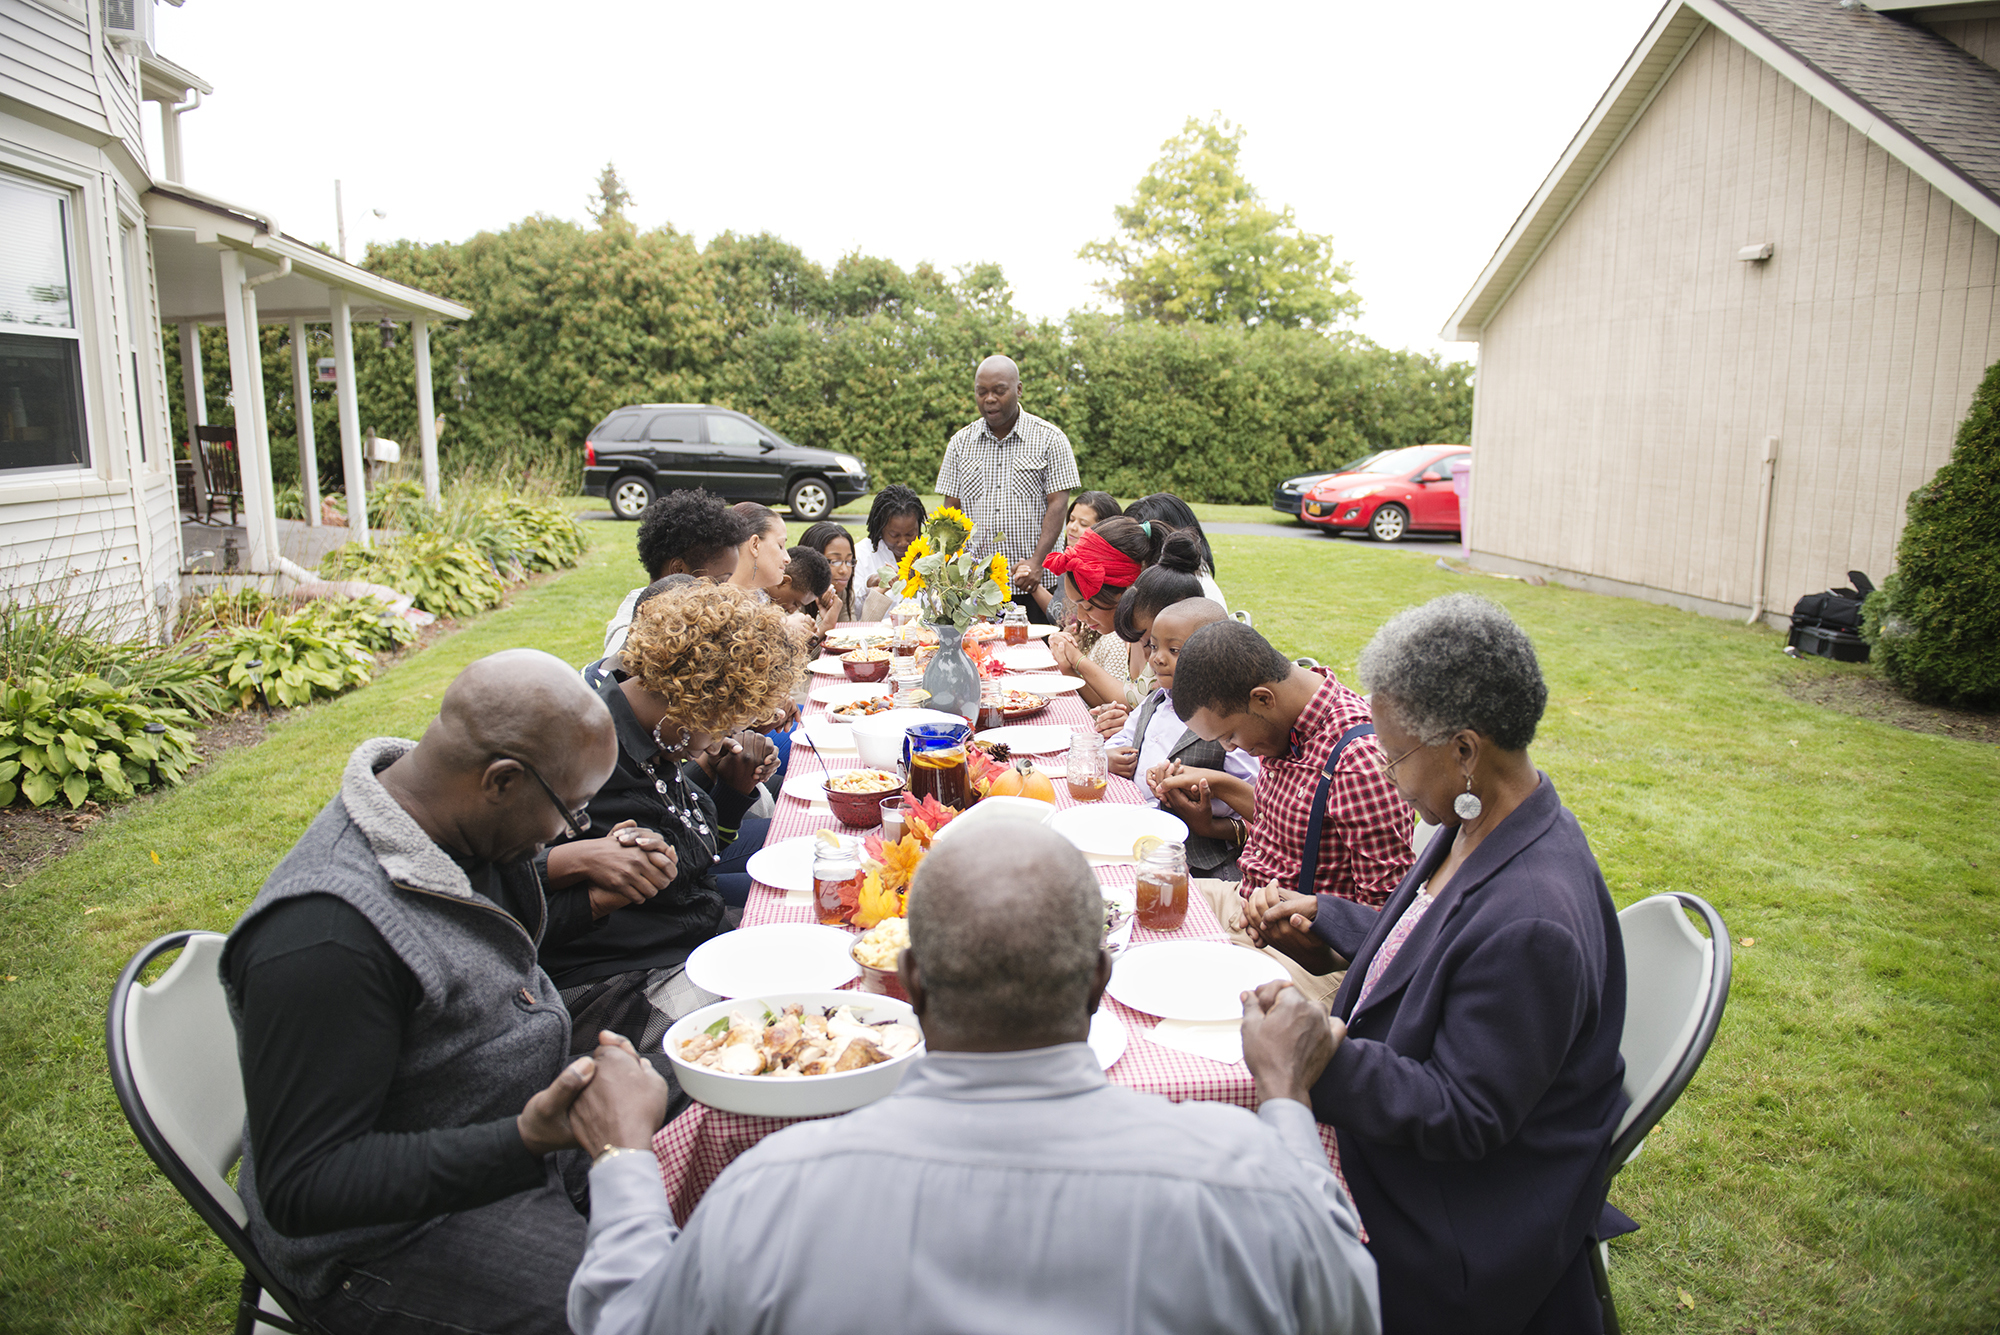 black family gathered in prayer around food-filled outdoor table